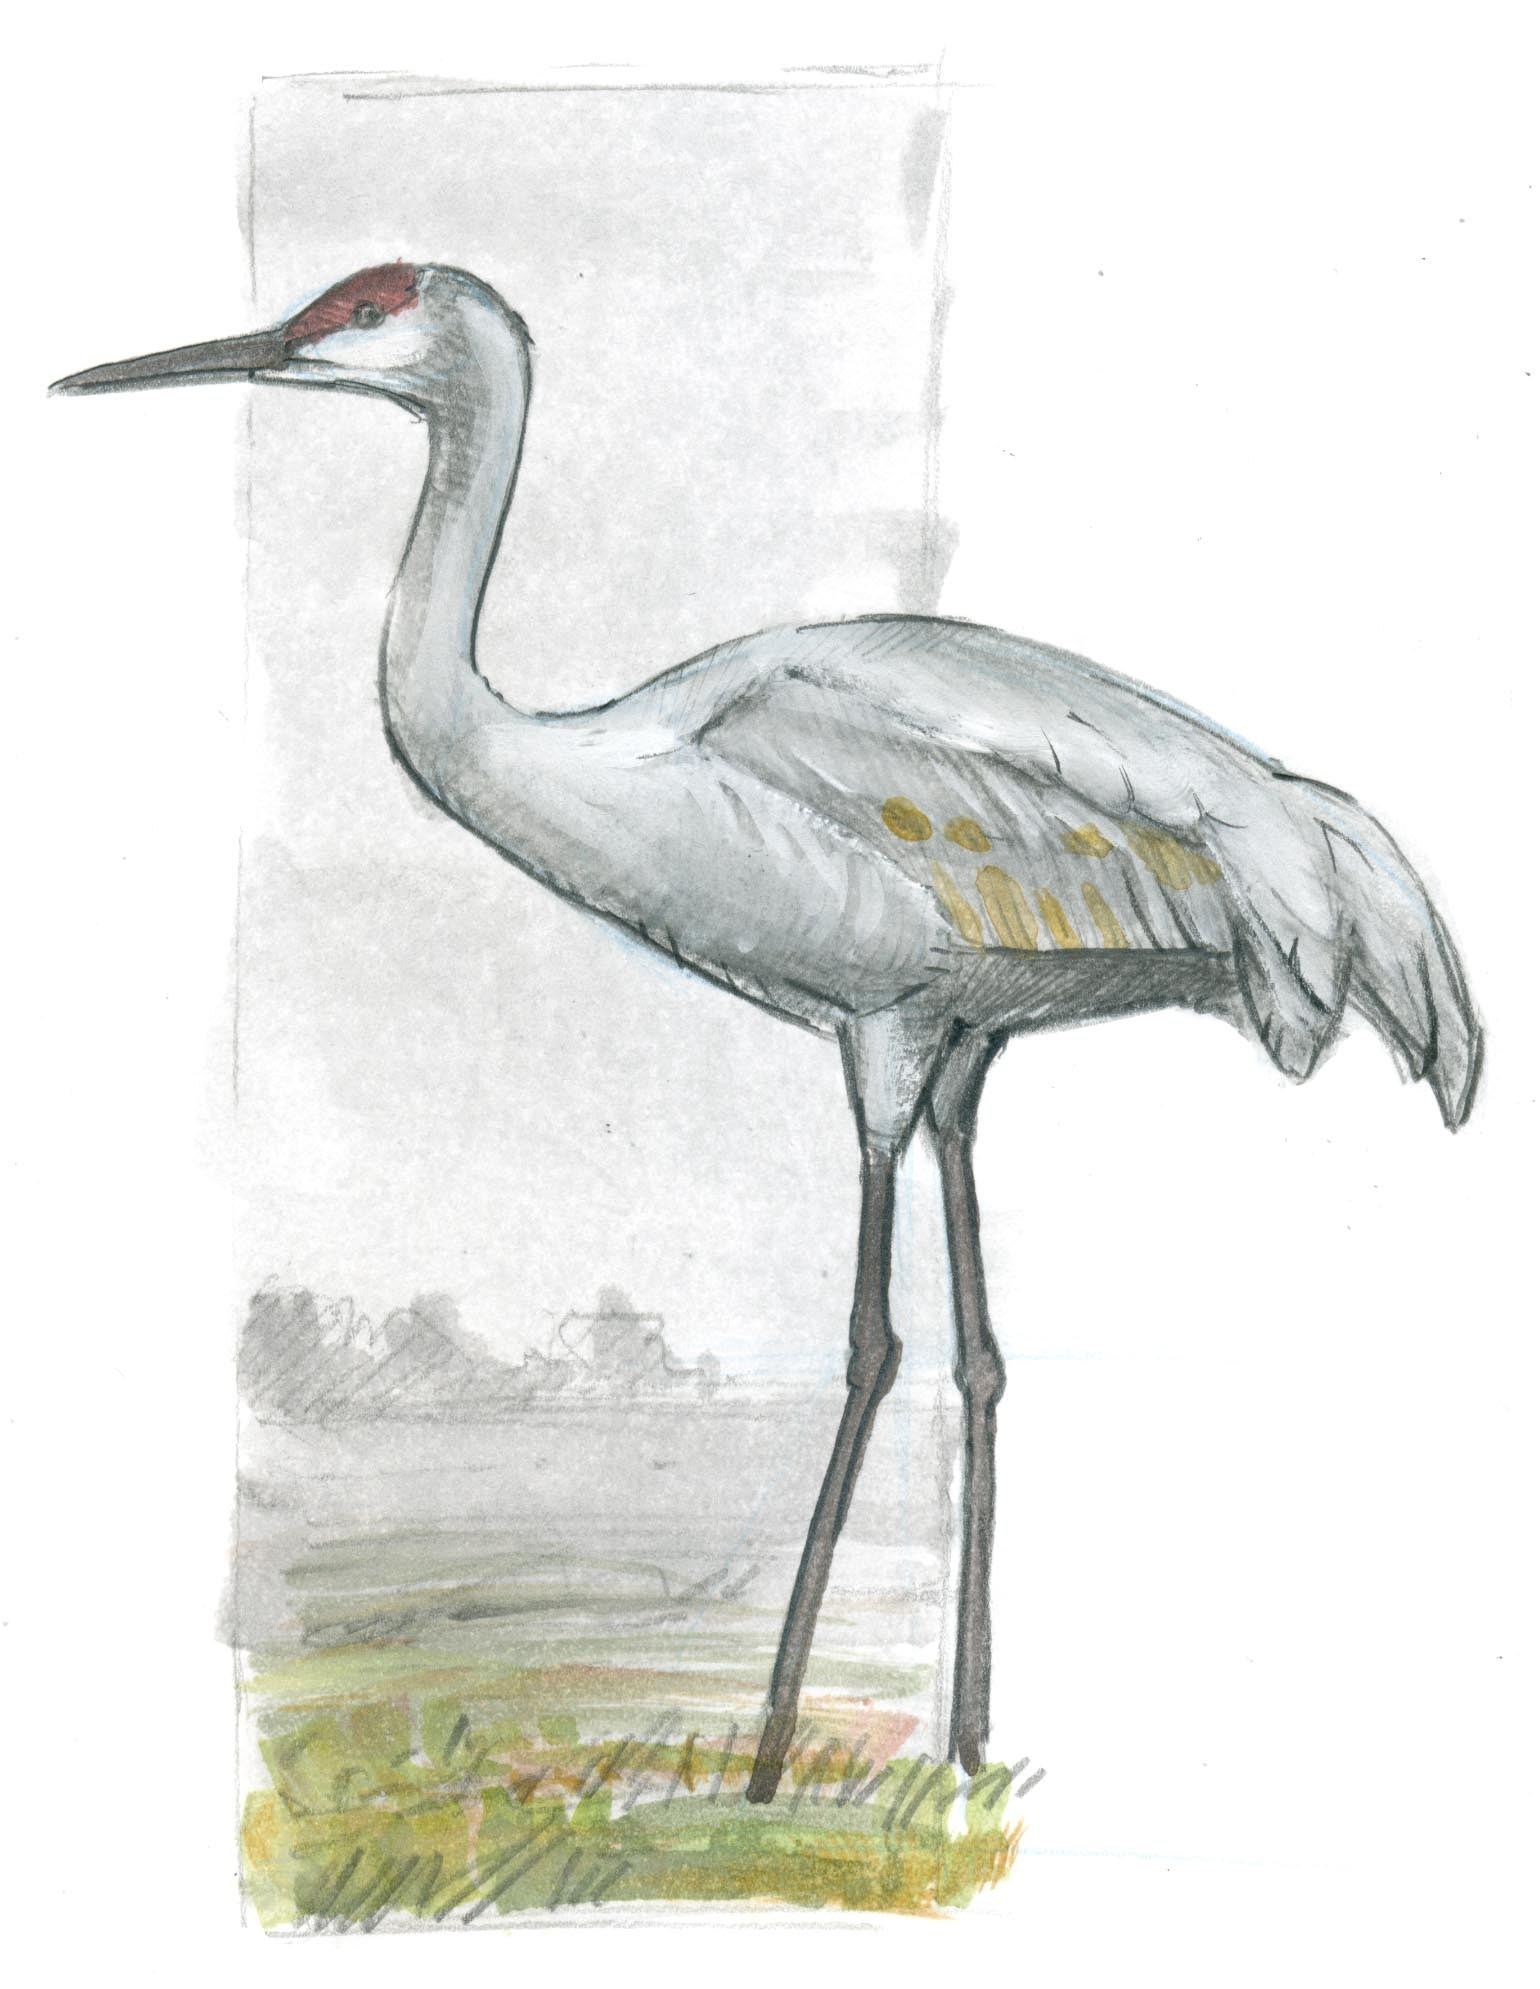 1540x1989 How To Draw A Sandhill Crane Basic Lines